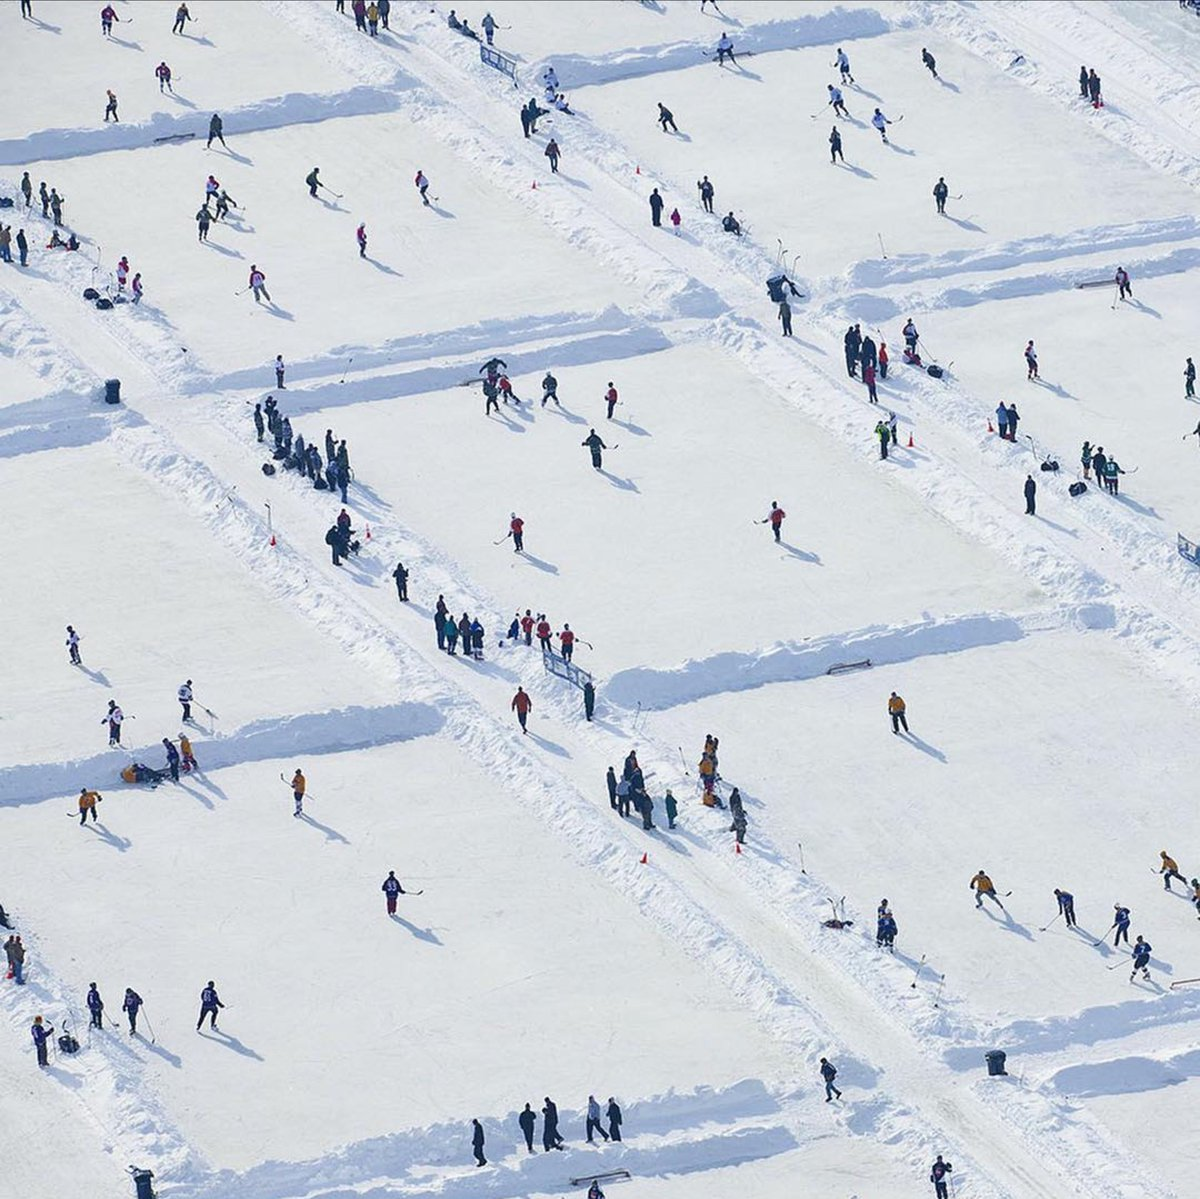 Eagle River Wisconsin On Twitter Make Plans For Pond Hockey Just About 300 Teams And 2 000 Players Descend On Dollar Lake Next Month George Steinmetz Event Info Https T Co S3qqtdolns Https T Co Wgsmwzjipc